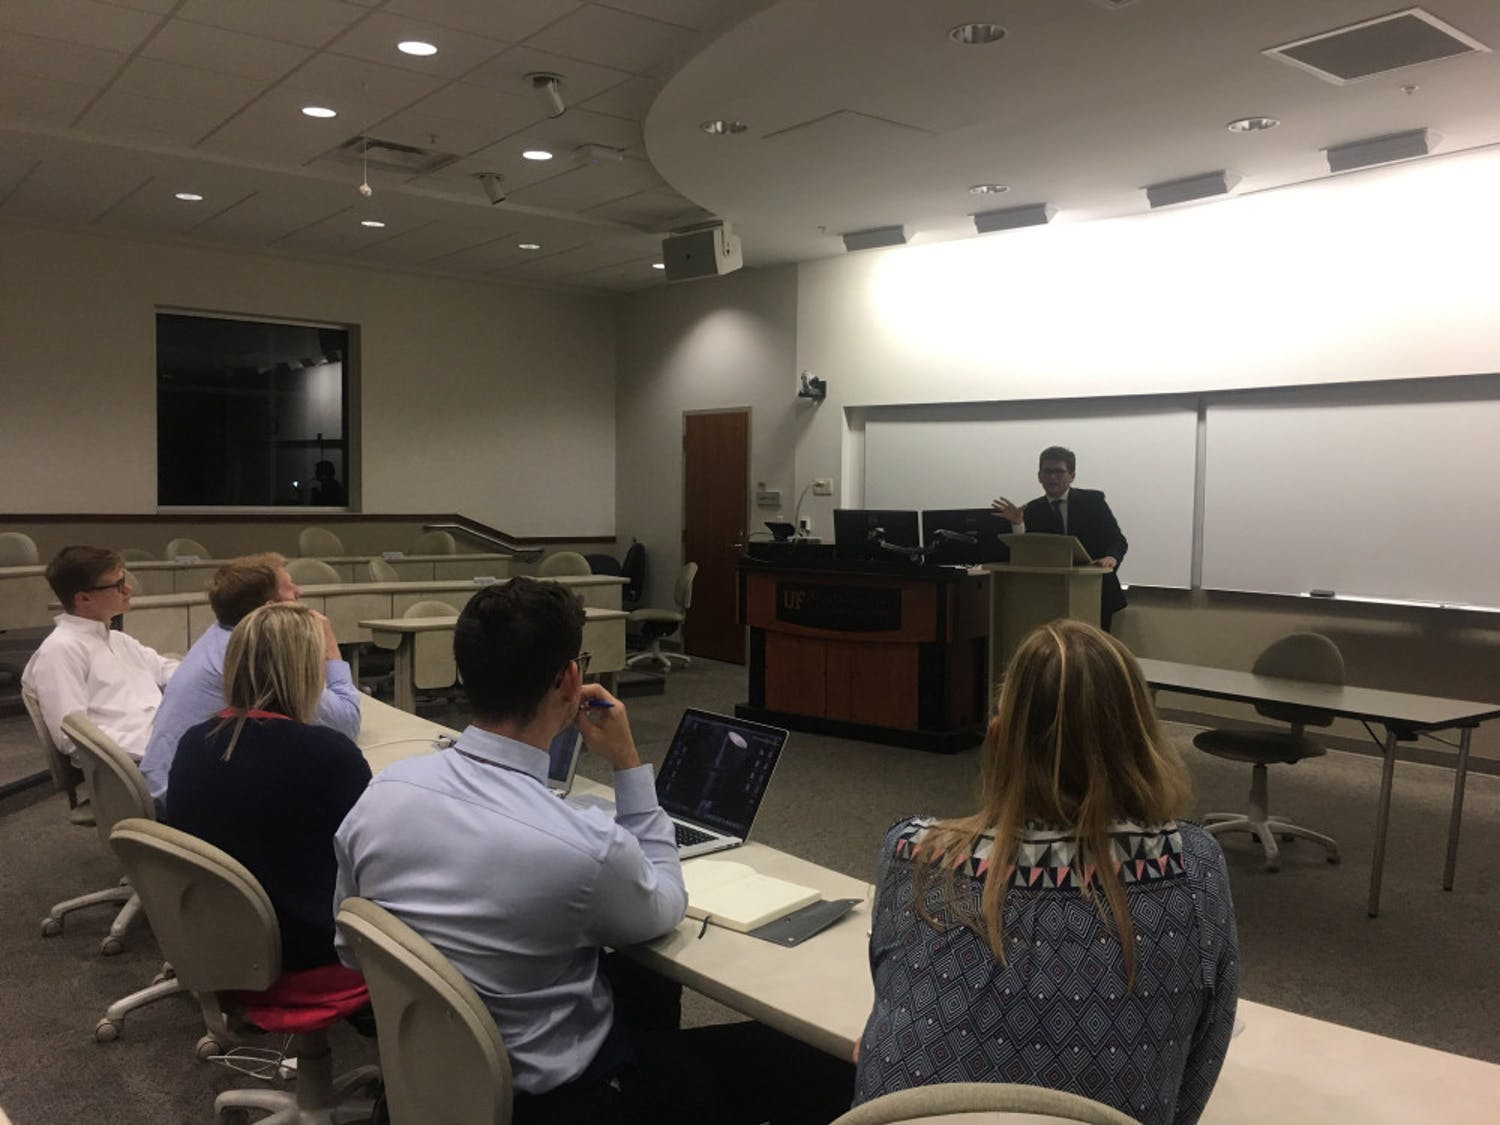 At a Student Government Supreme Court hearing Wednesday night, the court reaffirmed their ability to oversee unconstitutional Student Senate rules.